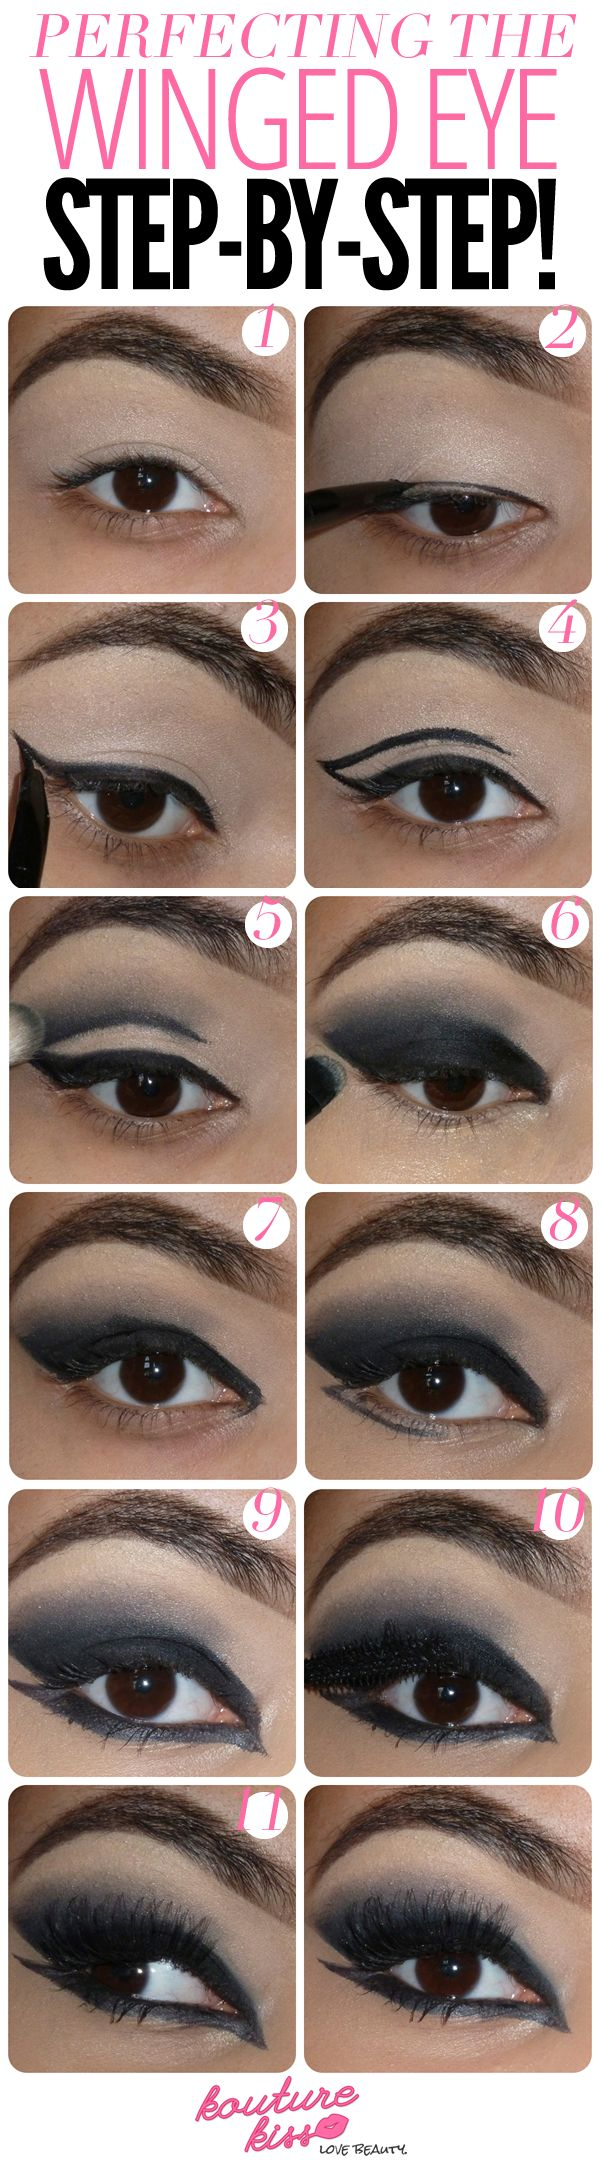 10 Creative And Useful Makeup Tutorials, Perfecting The Winged Eye (use different colors)